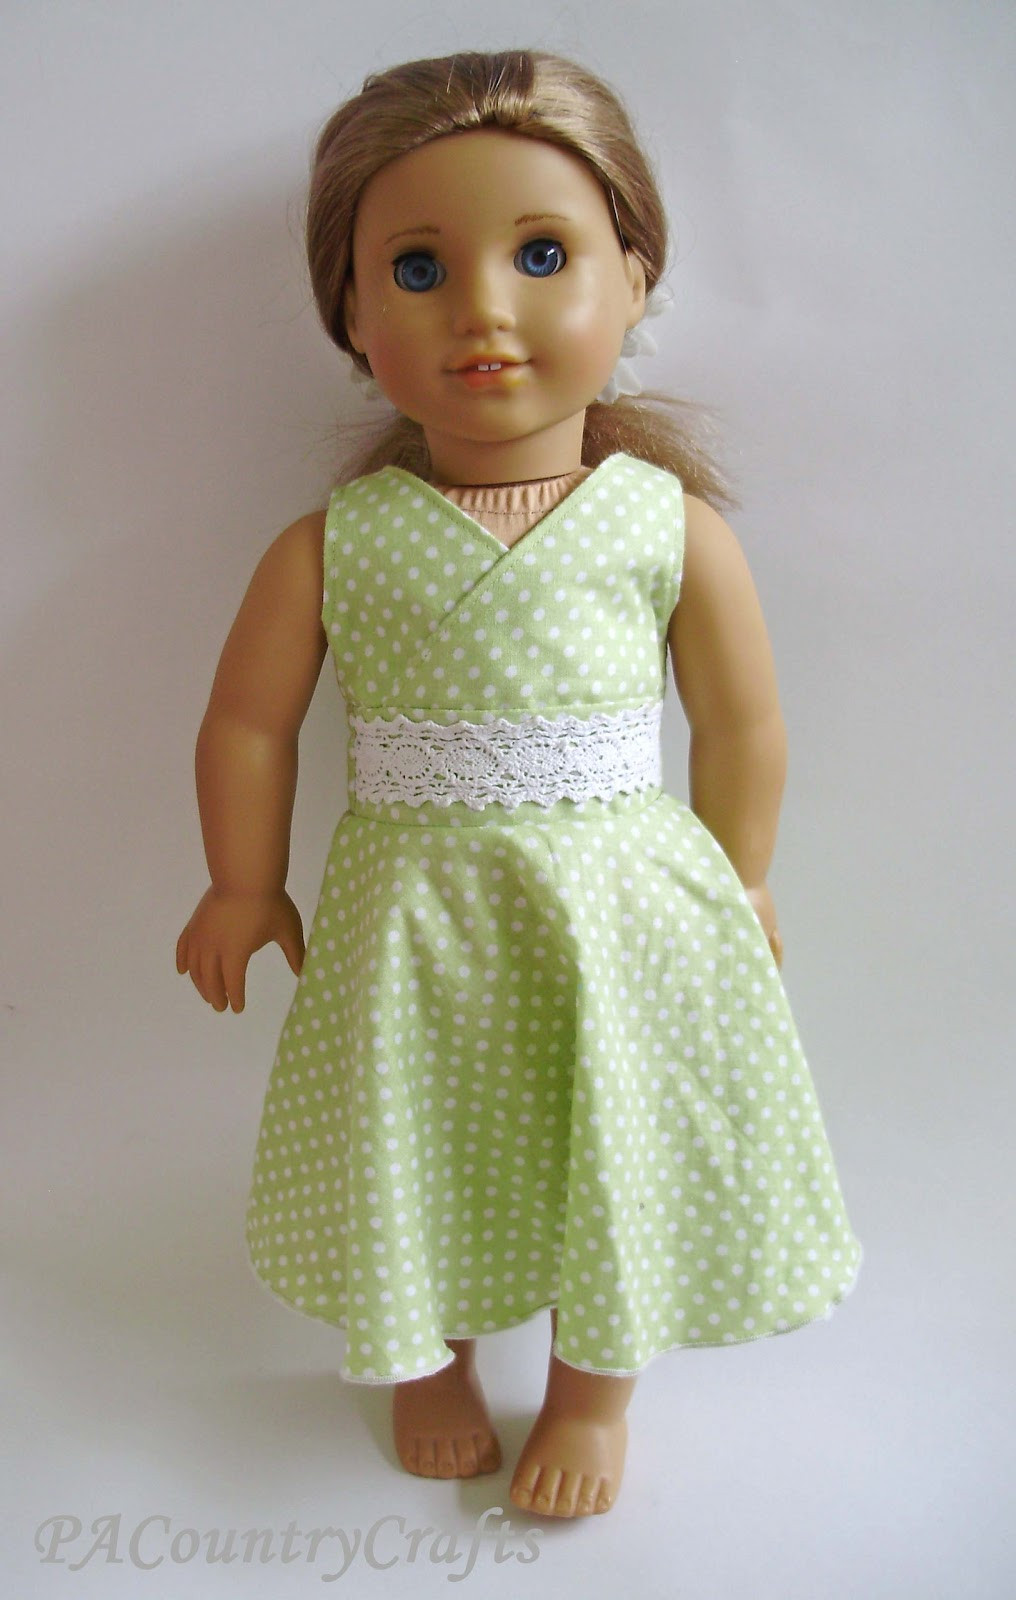 Doll Patterns Luxury Twirly Lace Doll Dress Pattern Of Doll Patterns Luxury Dolls Patterns Free Free Patterns